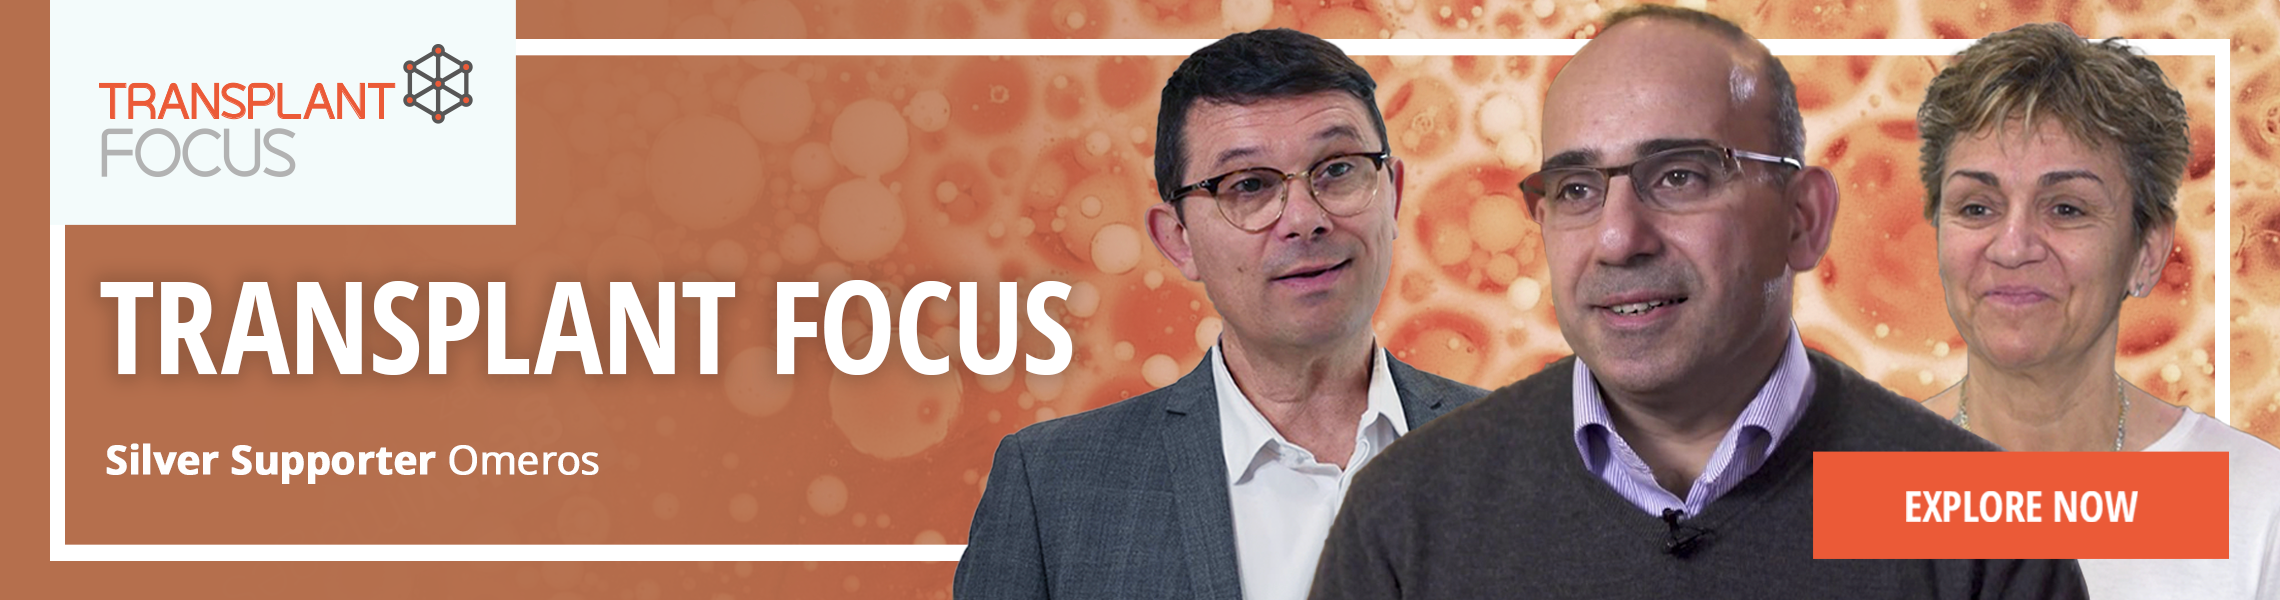 Watch the Transplant Focus Channel